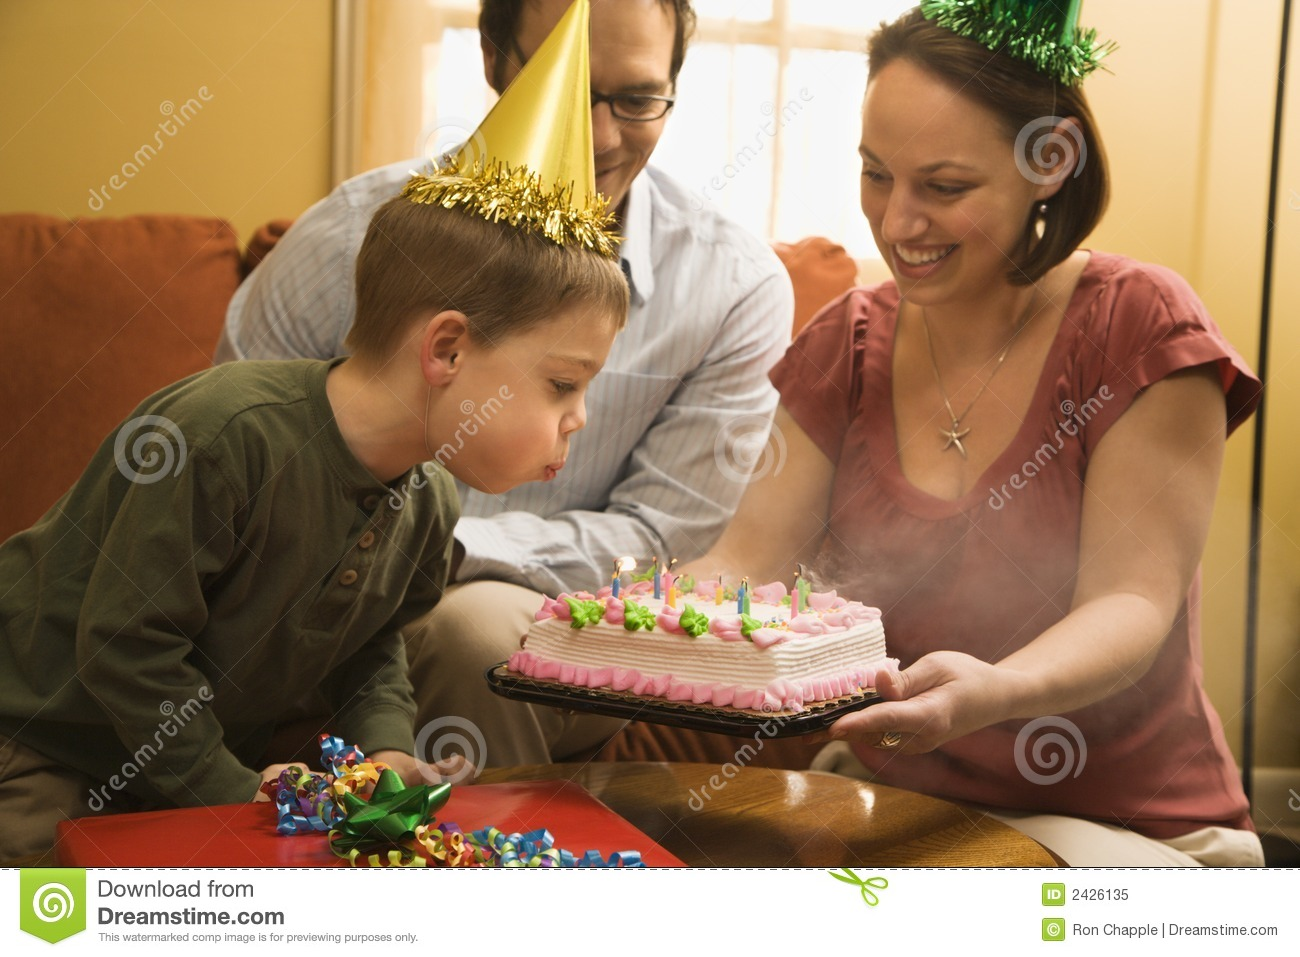 Boy with birthday cake.